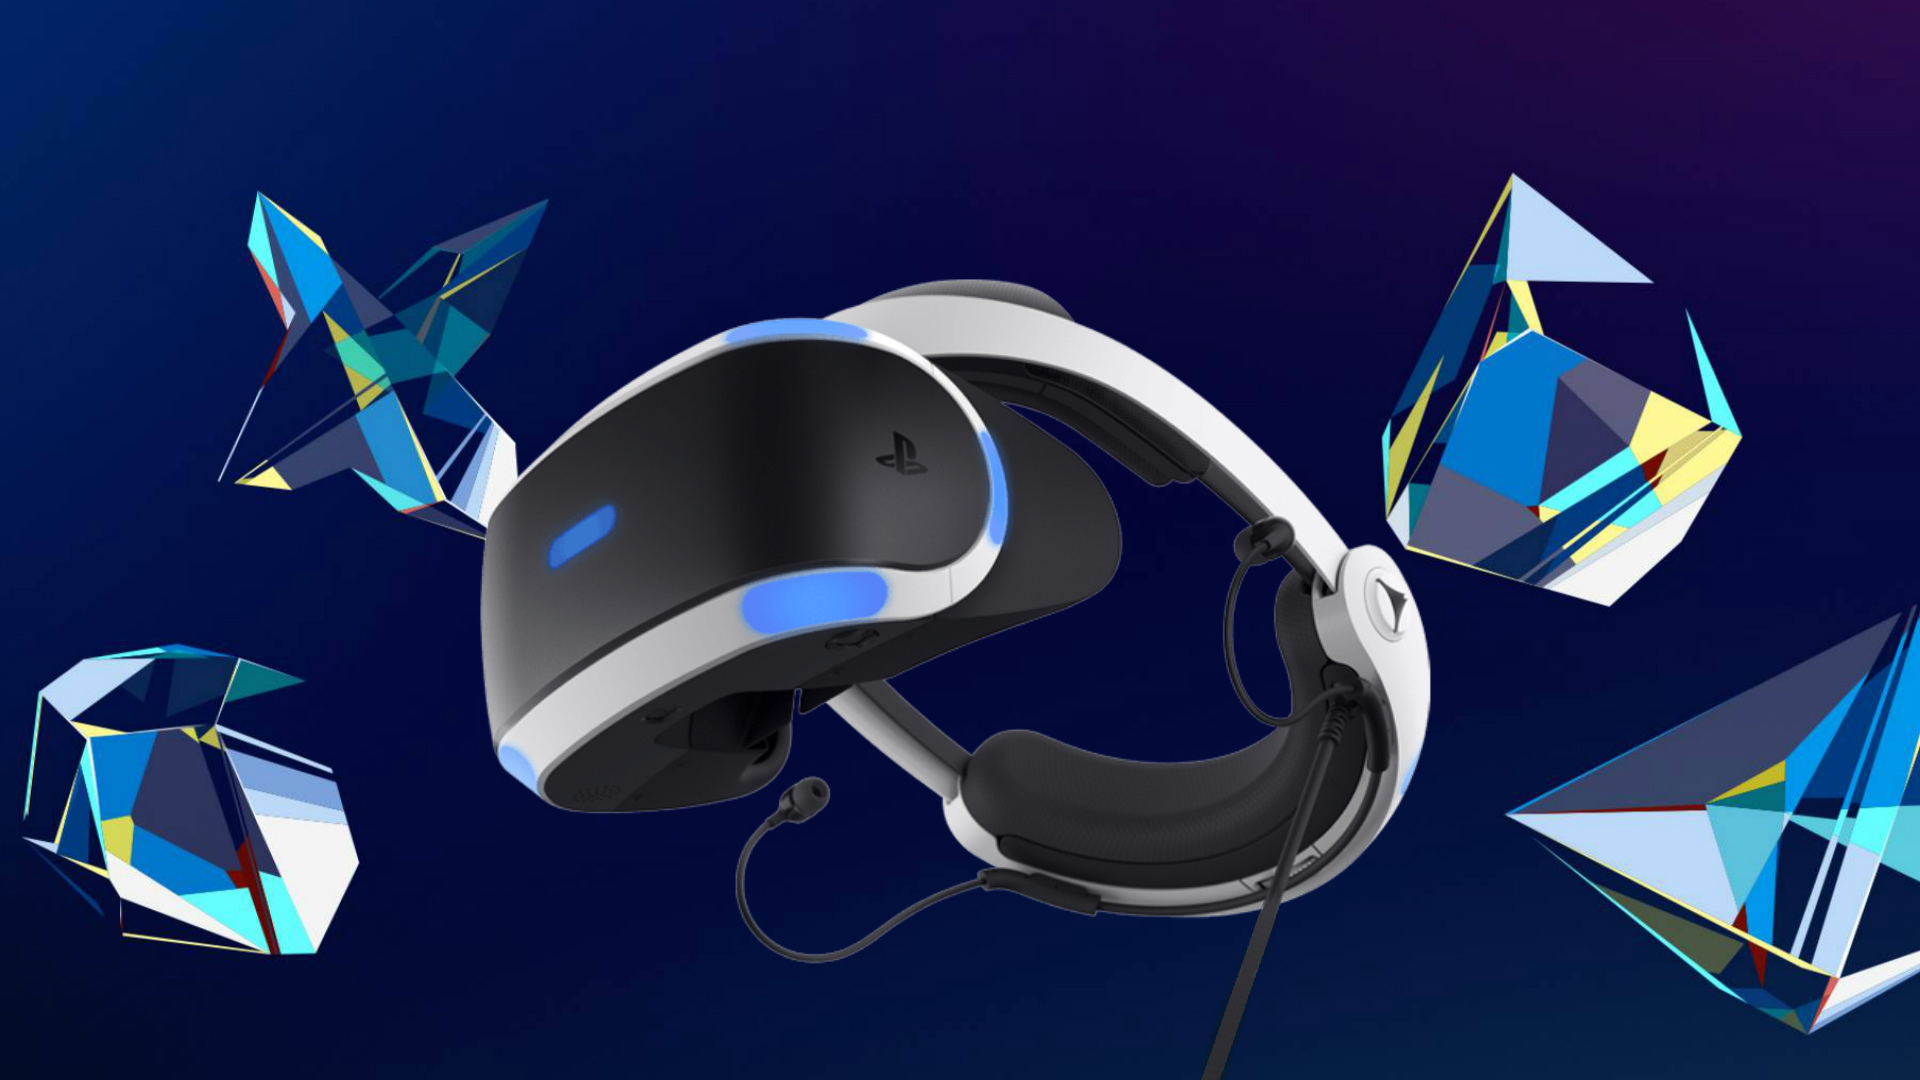 Sony Announces 2 New PSVR Bundles Coming This Month – Road to VR